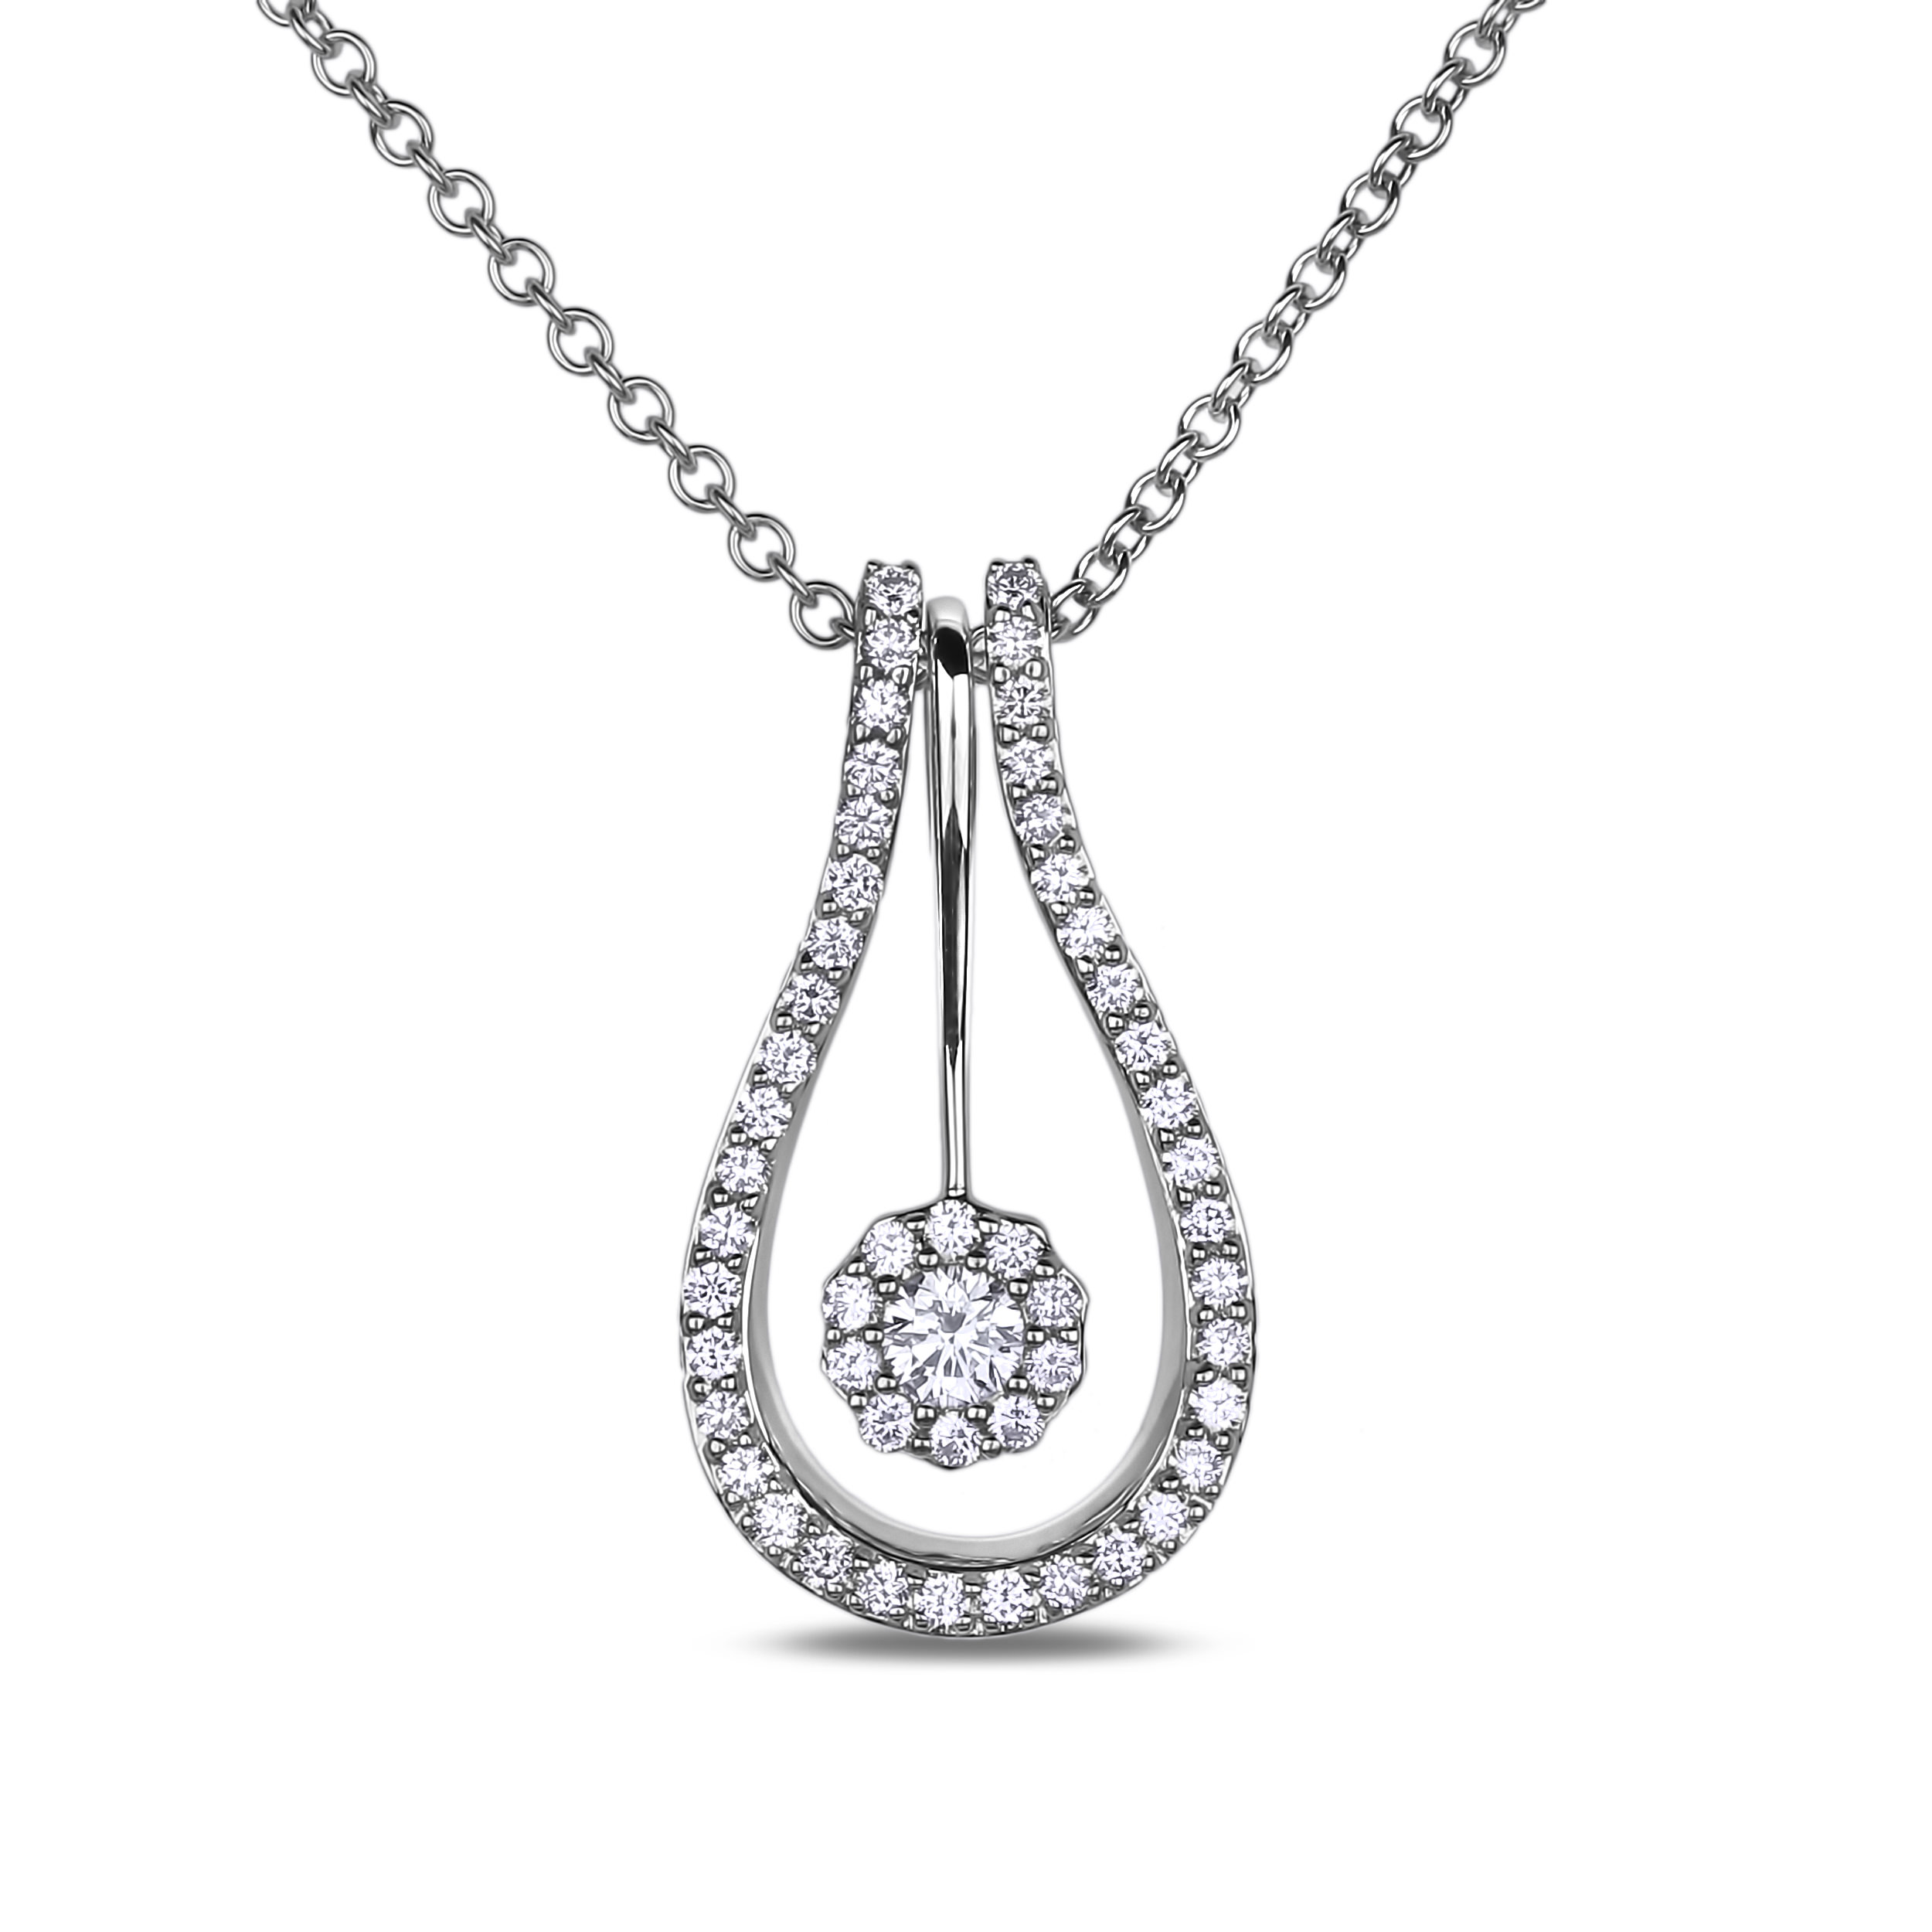 Diamond Pendants SGP194-305E (Pendants)